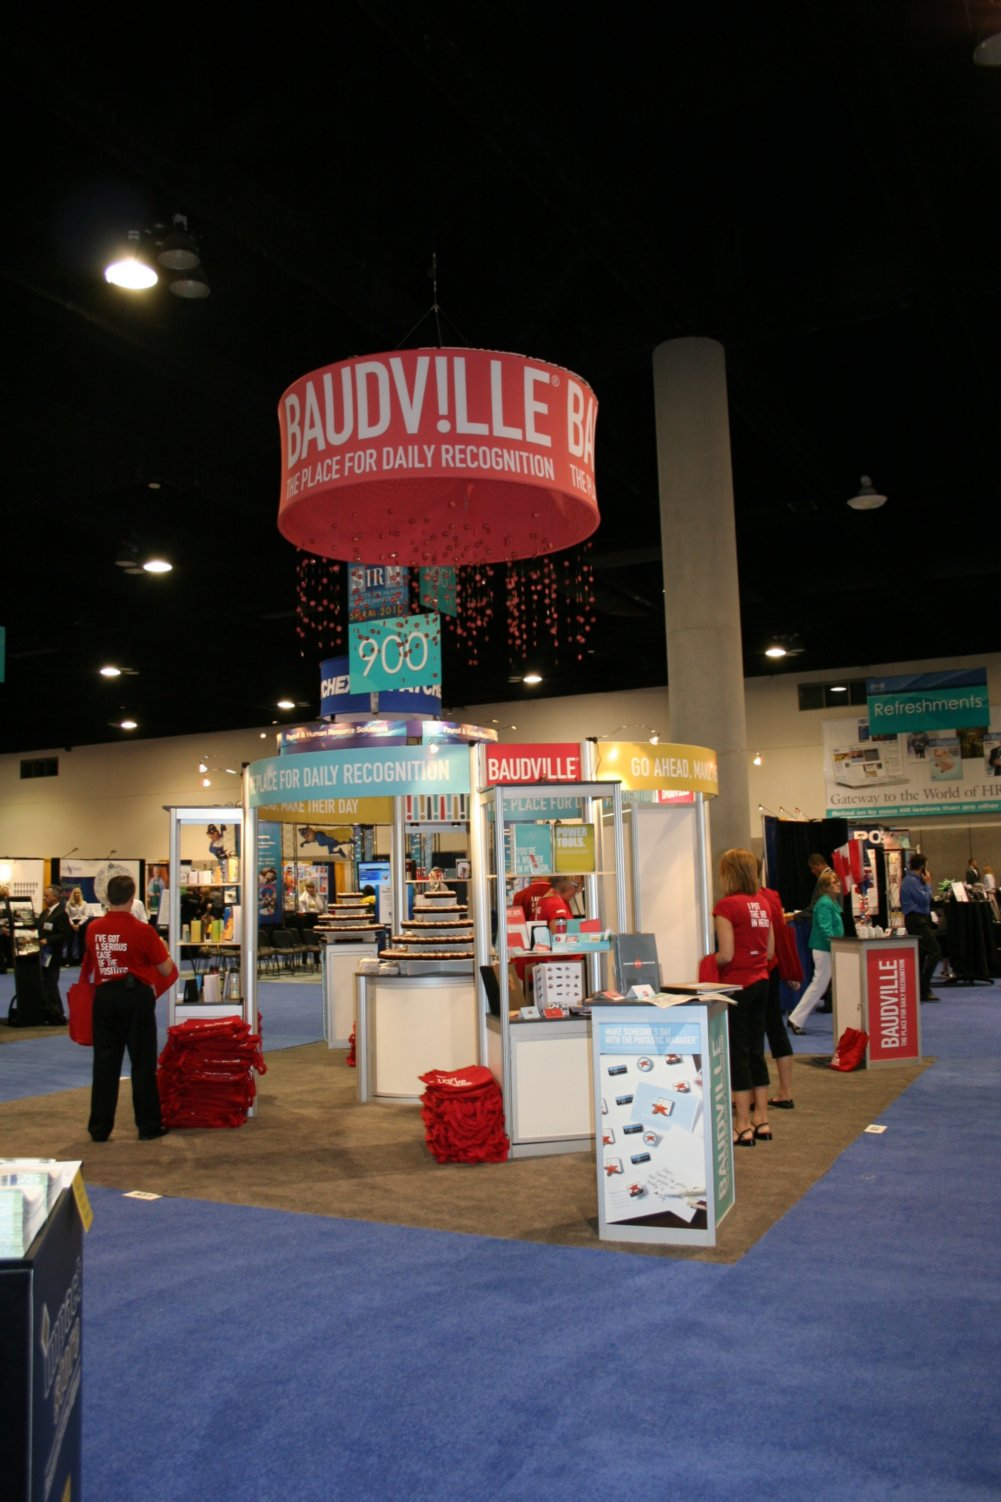 The Baudville Booth at SHRM